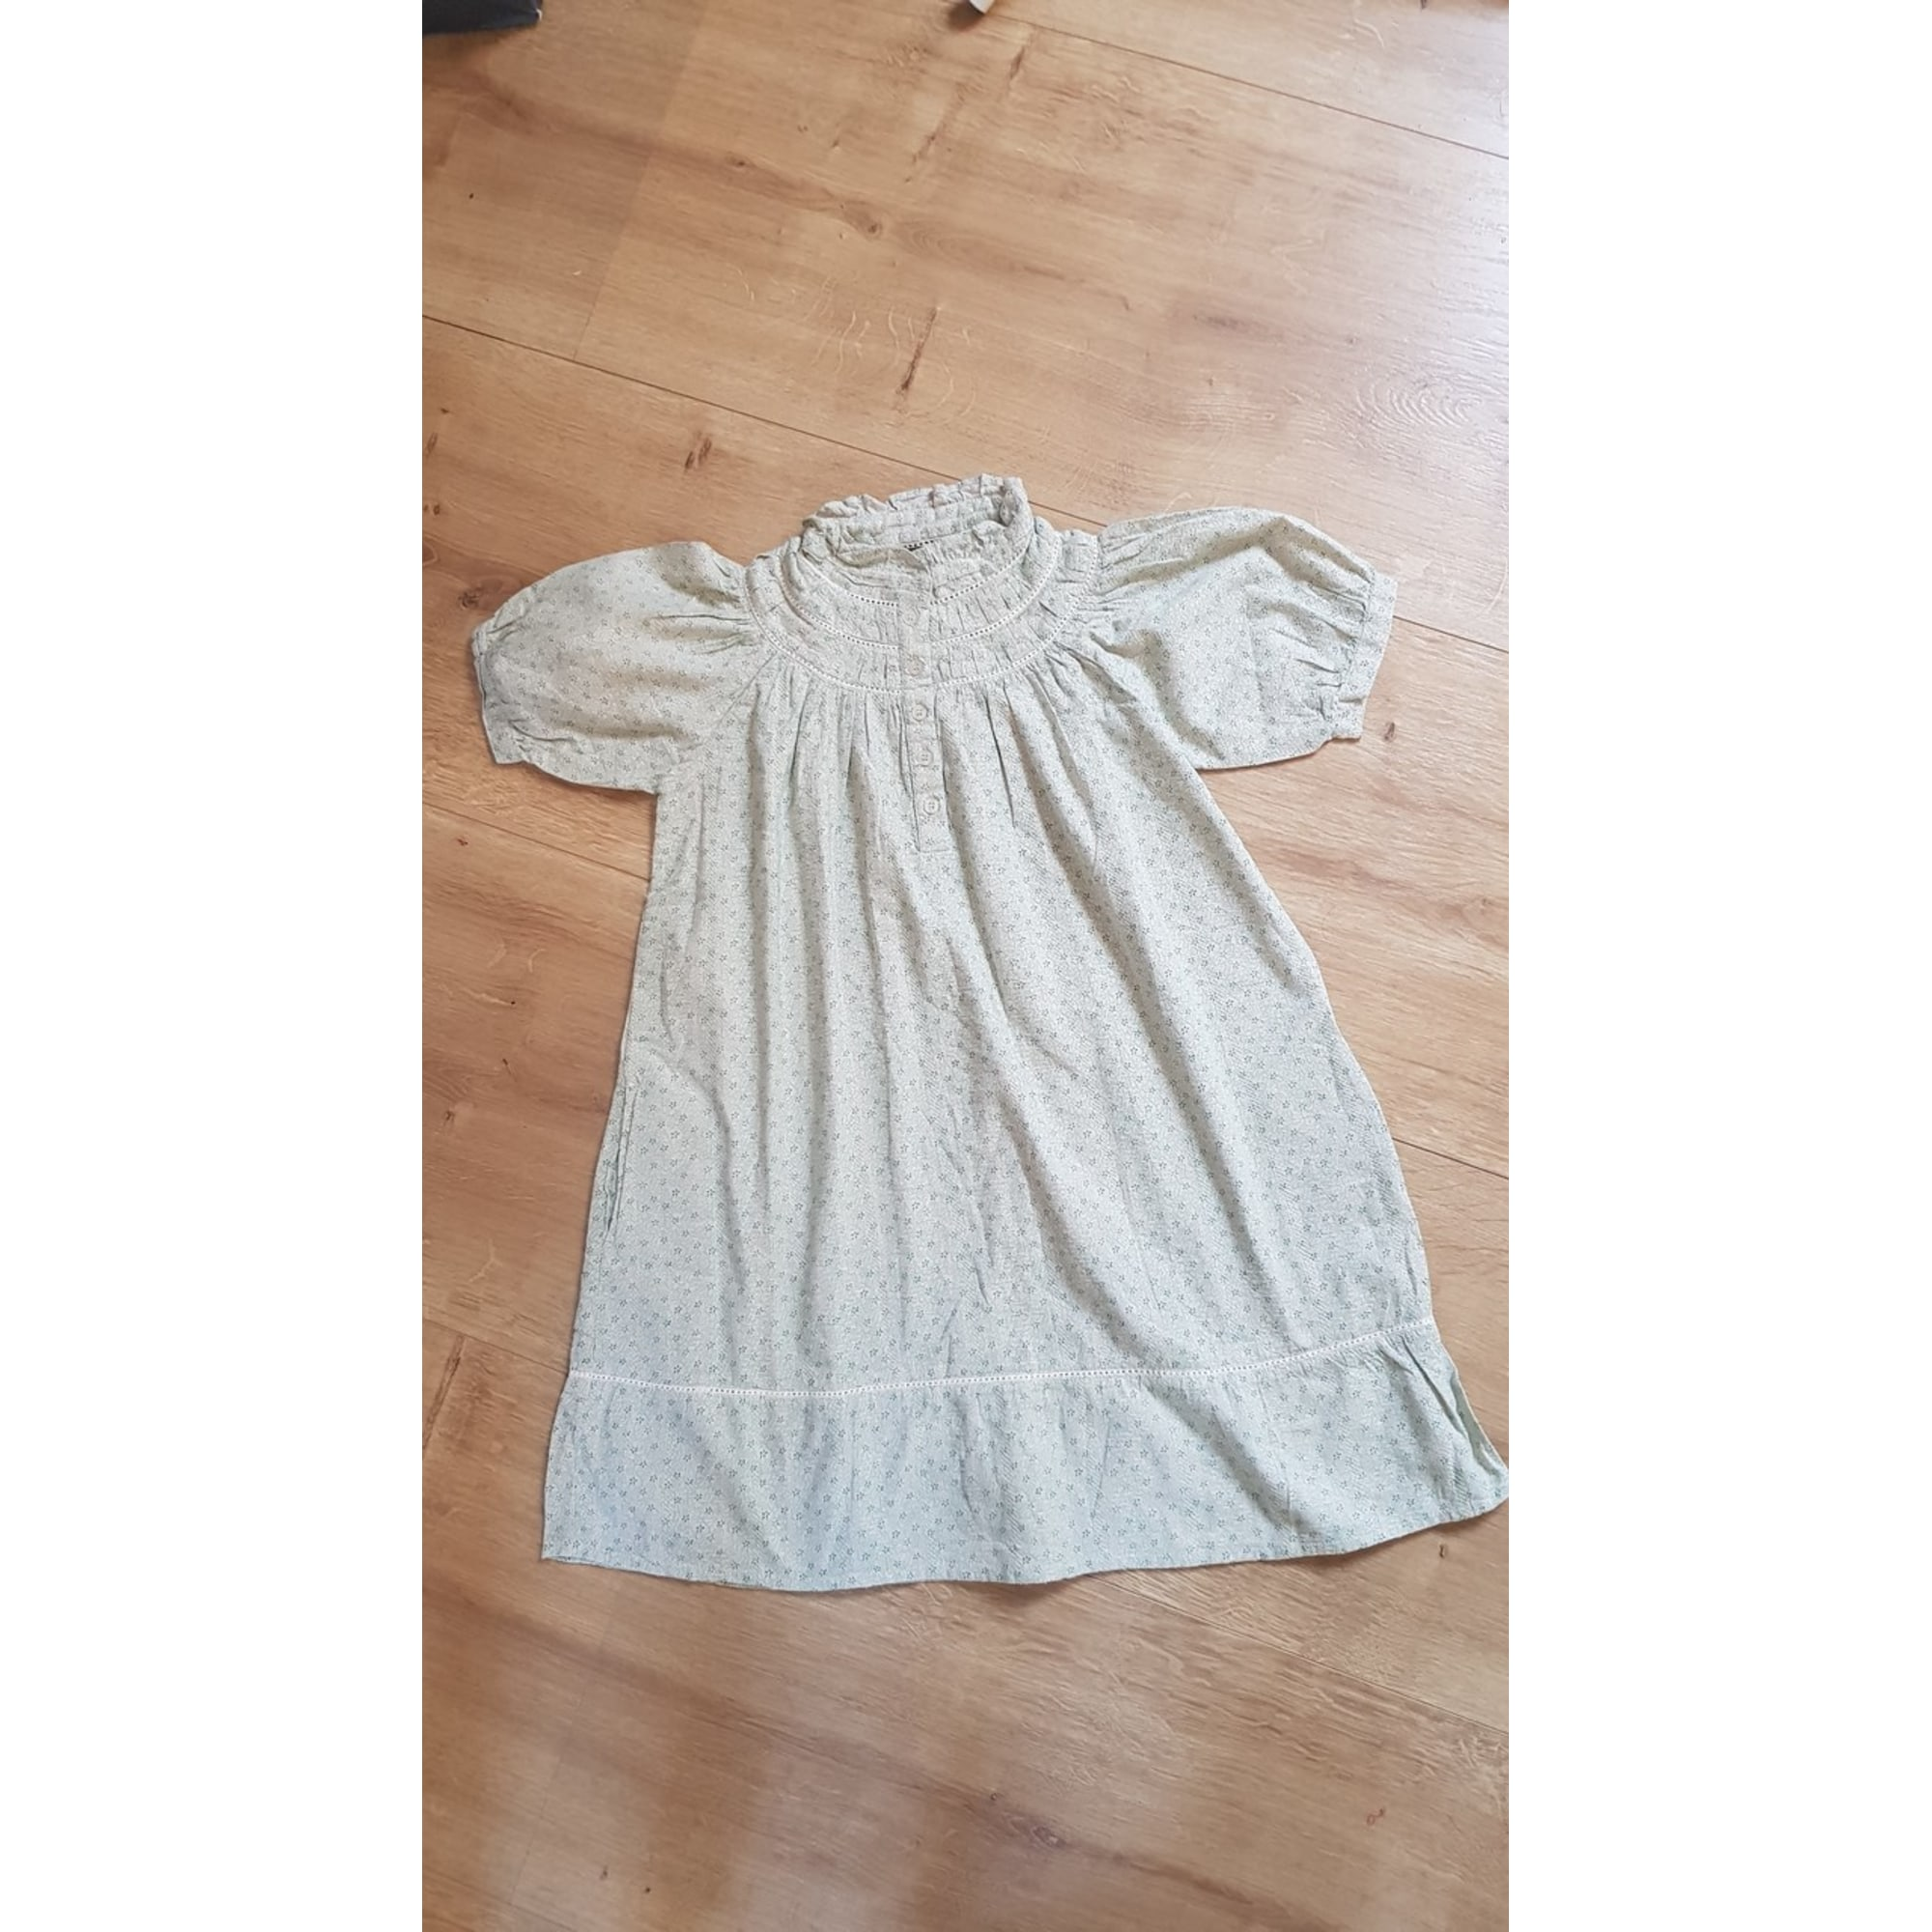 Robe NELL BY S.J. coton vert 9-10 ans